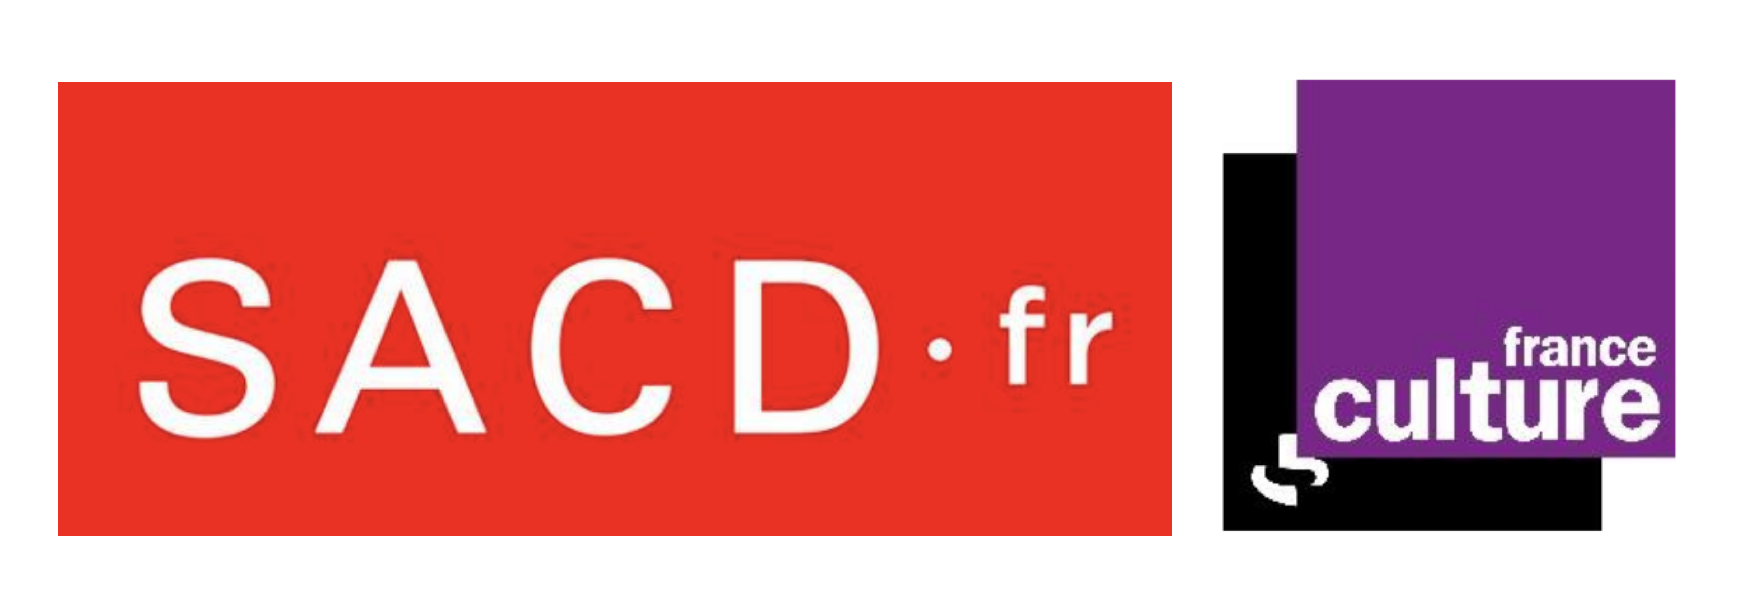 Podcasts : France Culture et la SACD lancent un appel à projets 2020